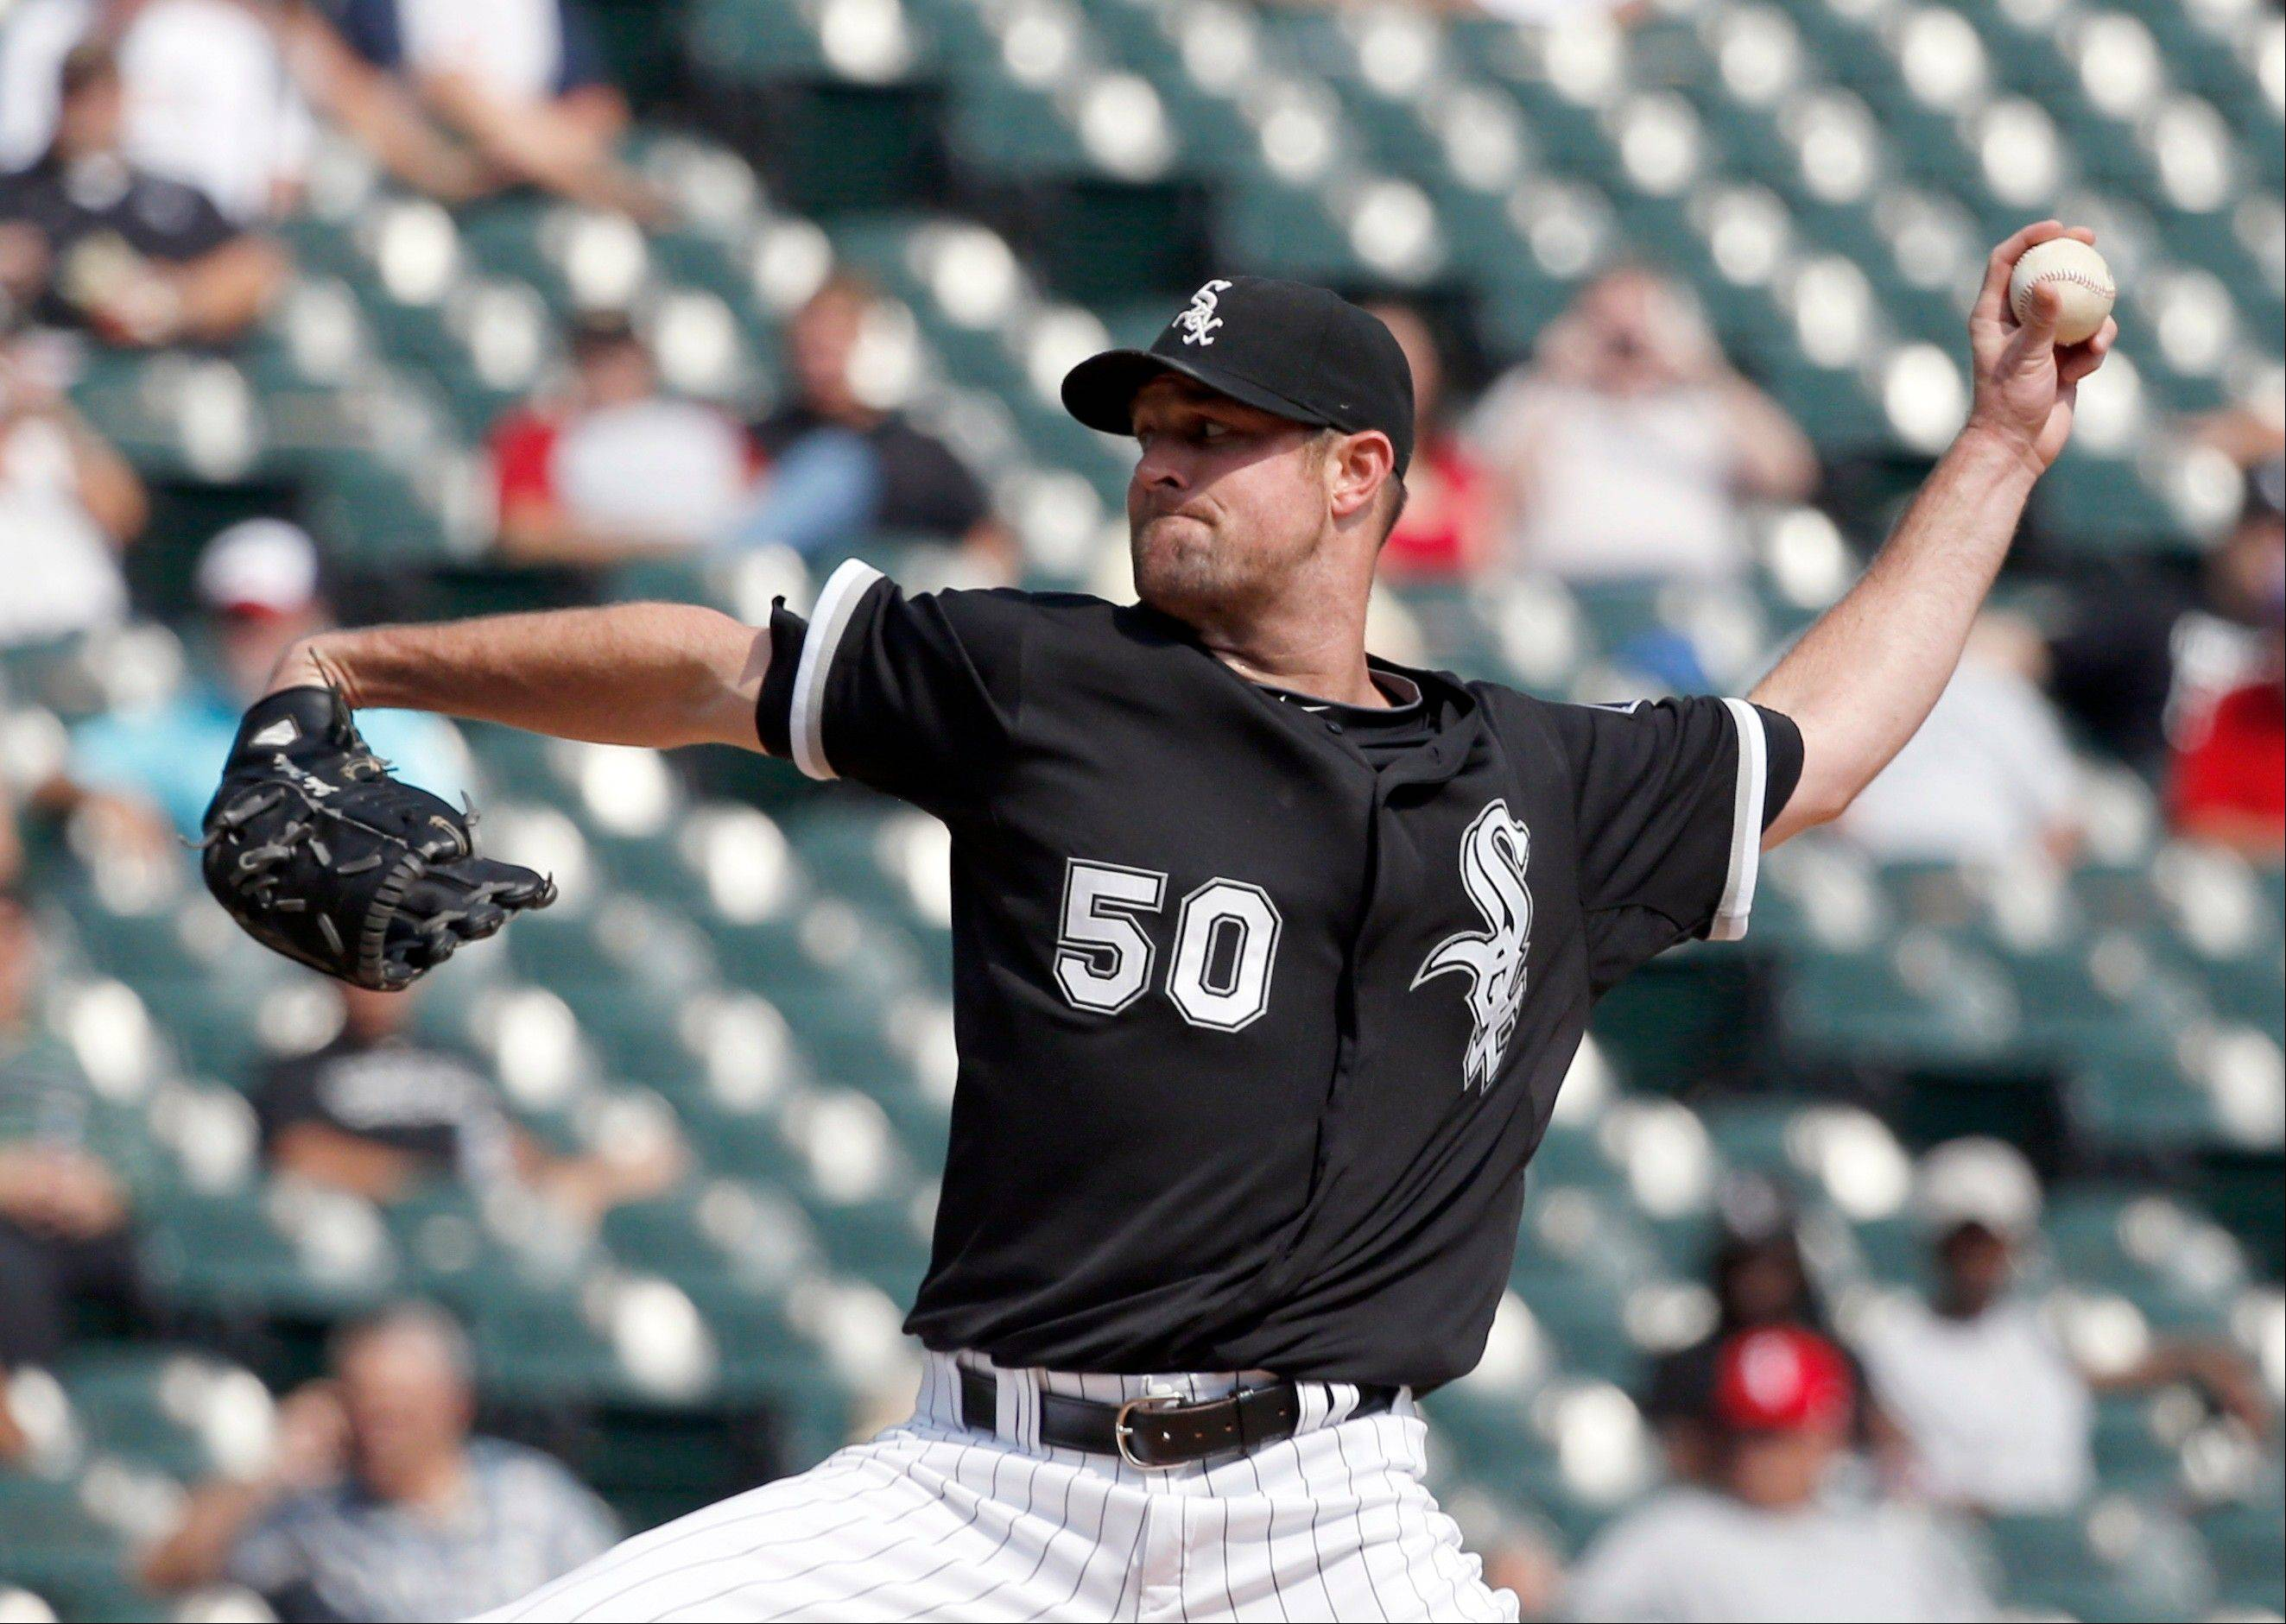 White Sox starter John Danks gave up 4 runs on 7 hits in the first 2 innings, but rebounded to retire the final 16 batters he faced Wednesday against the Twins at U.S. Cellular Field.